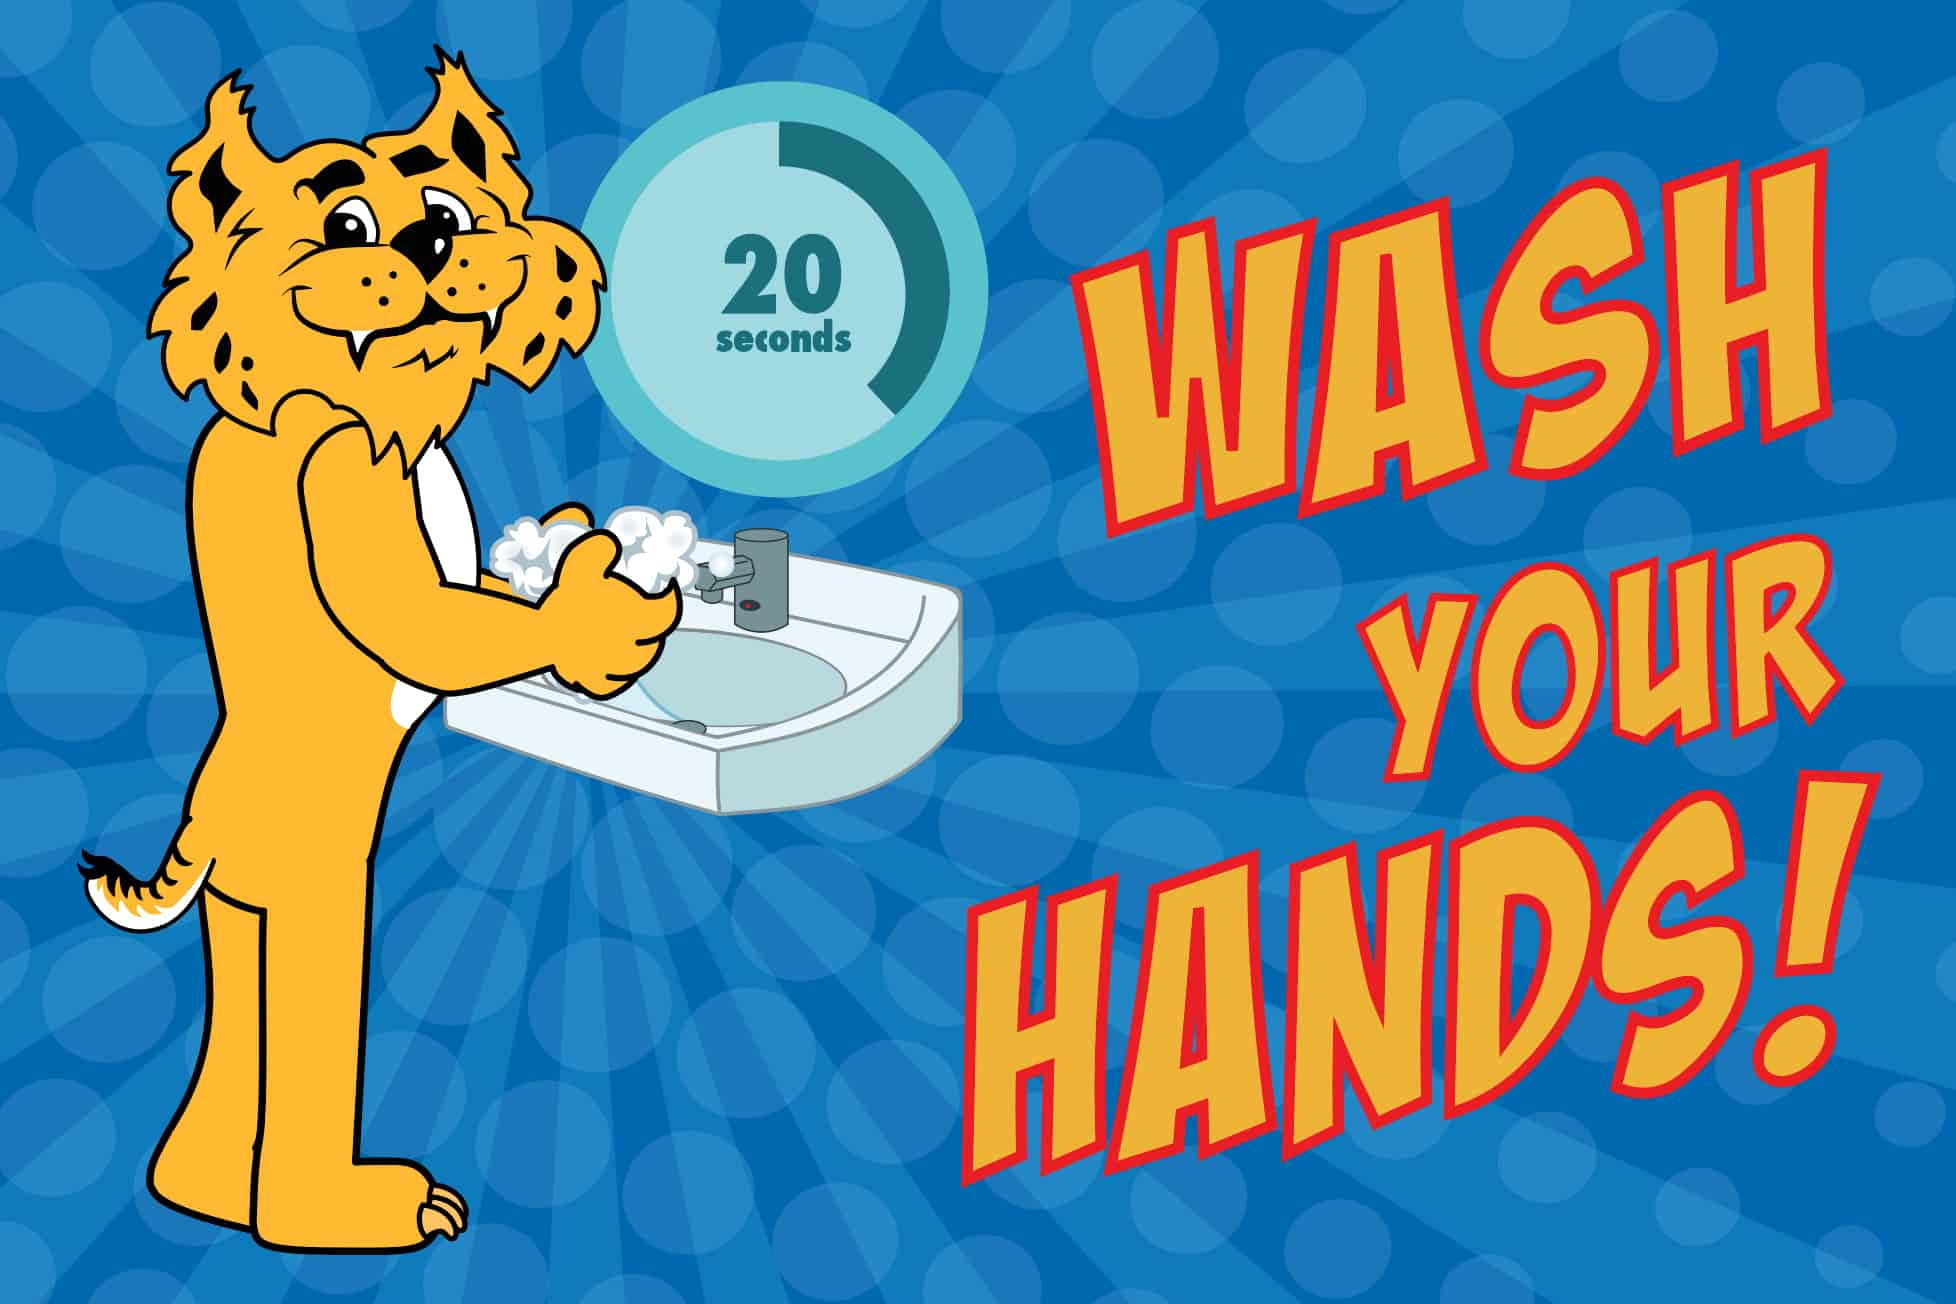 Wash Your Hands Bobcat Poster